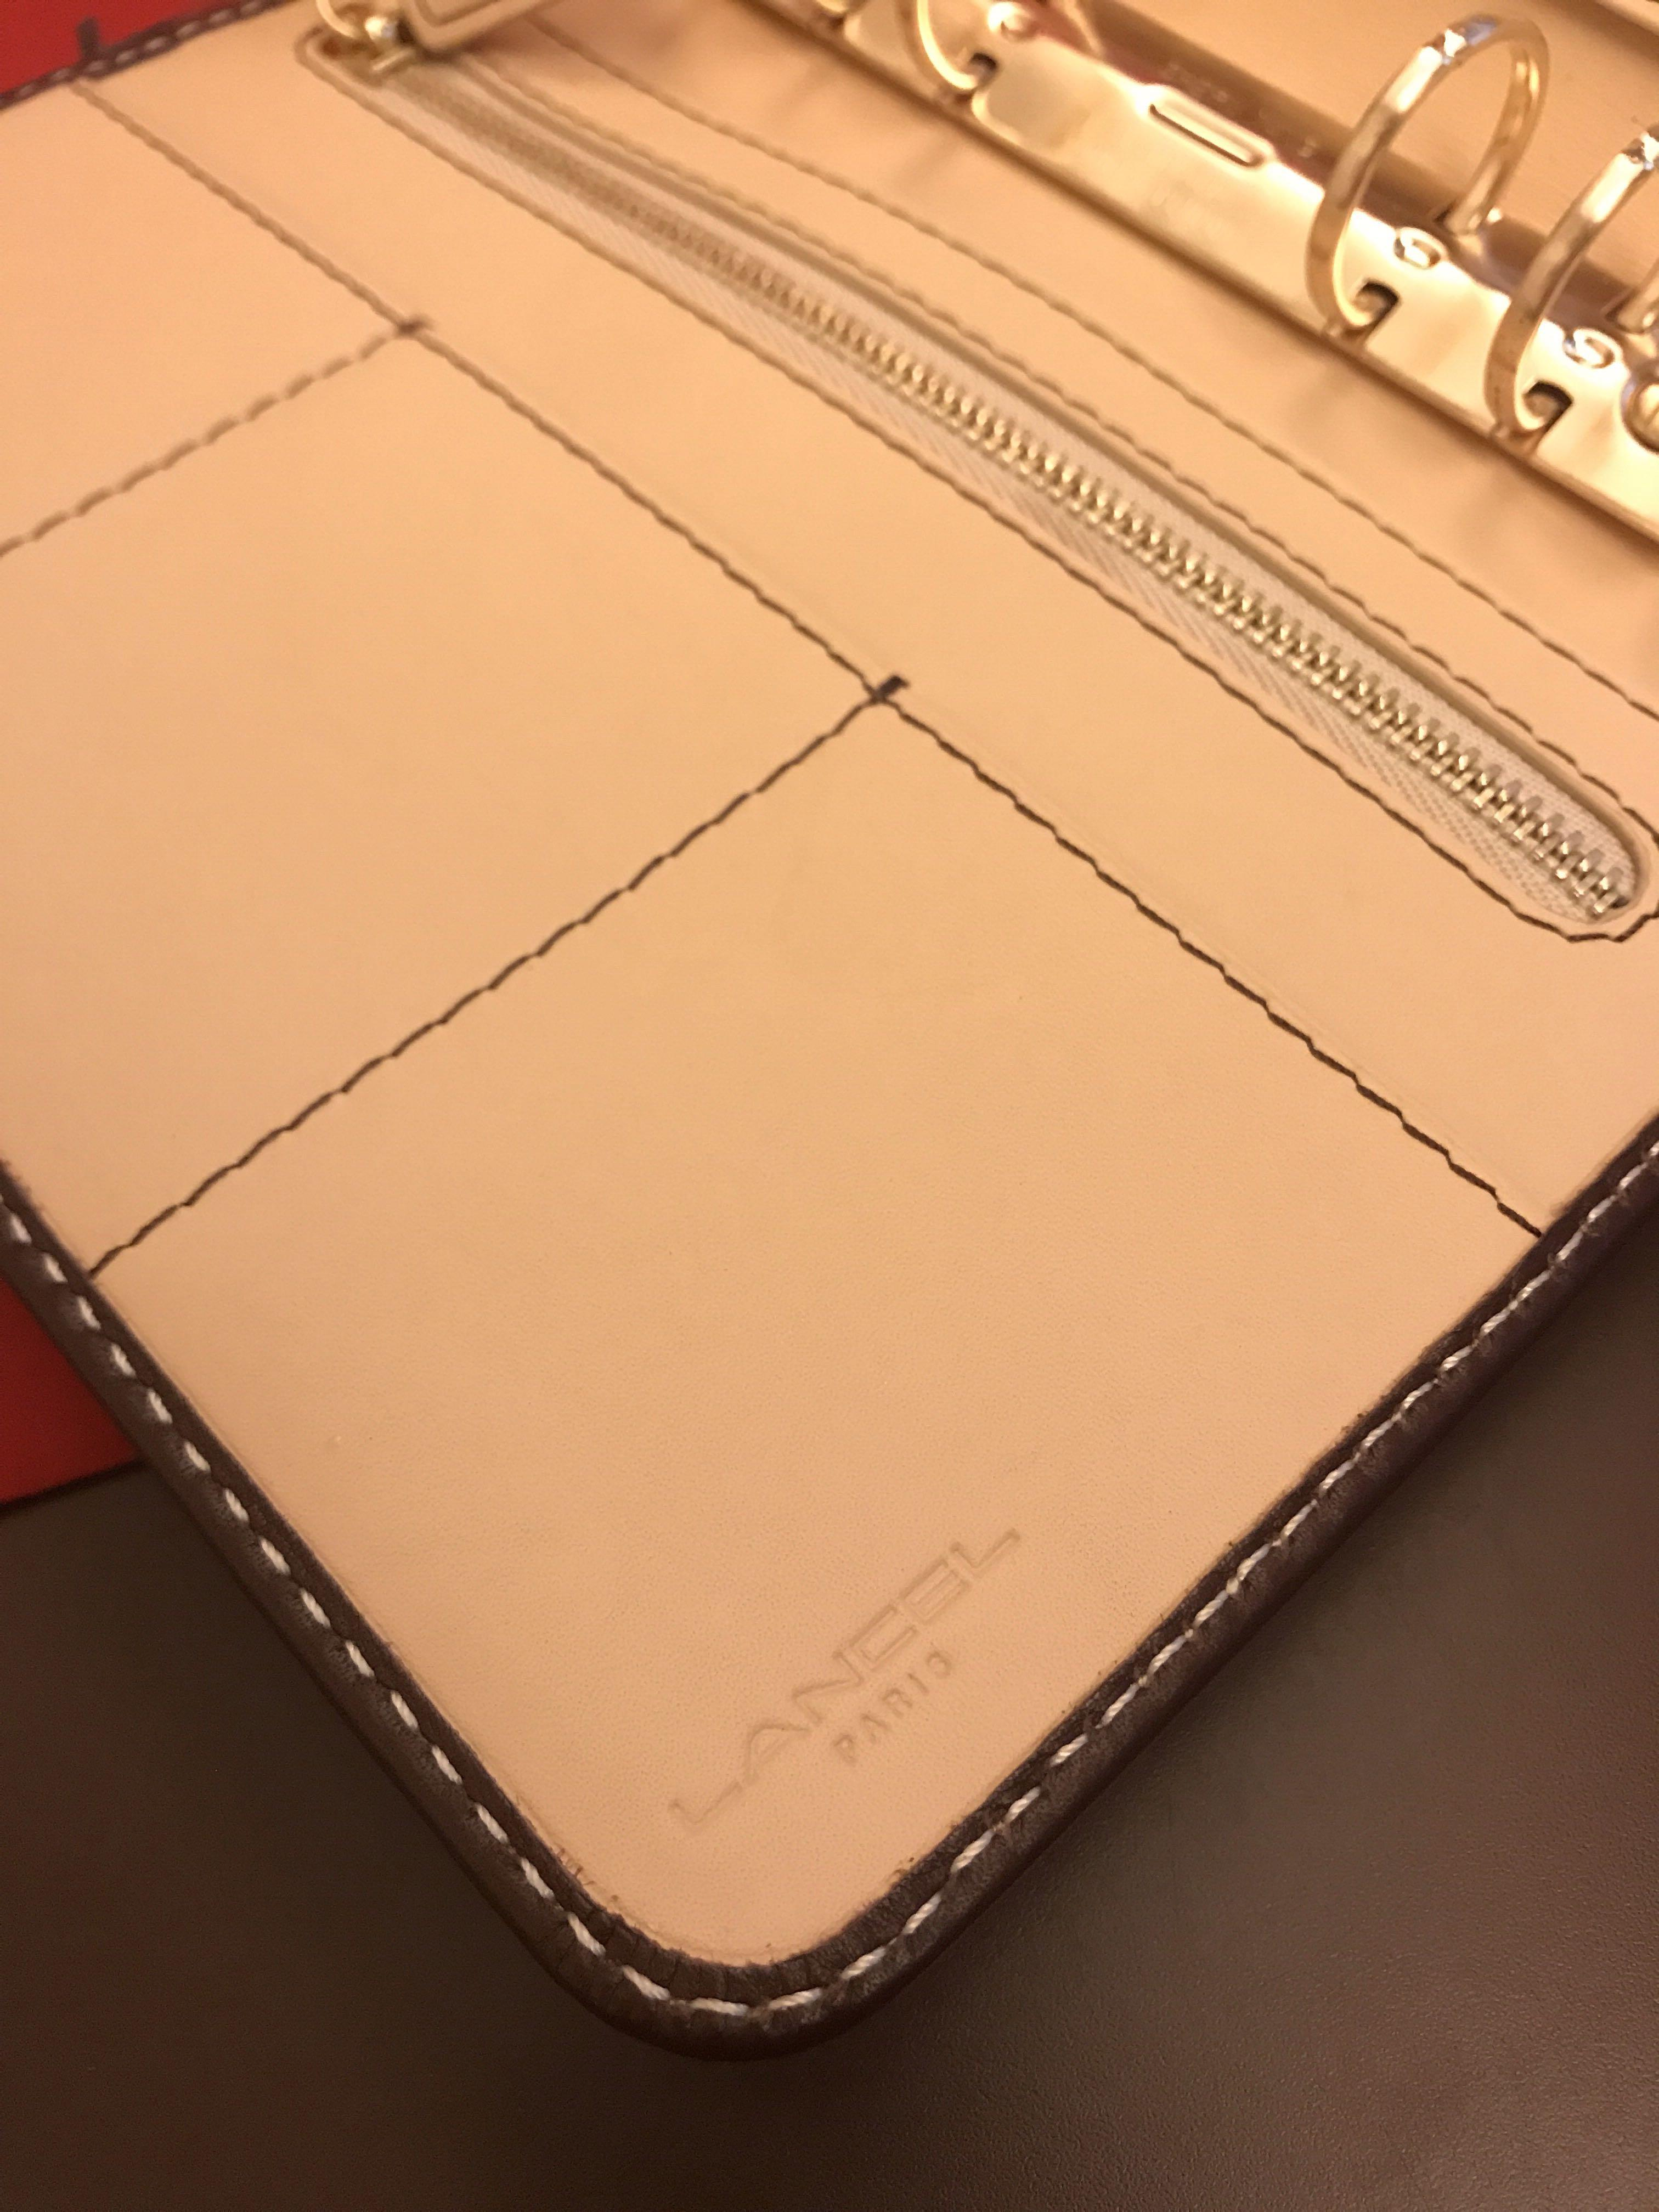 Brand new Lancel real leather brown color dairy book